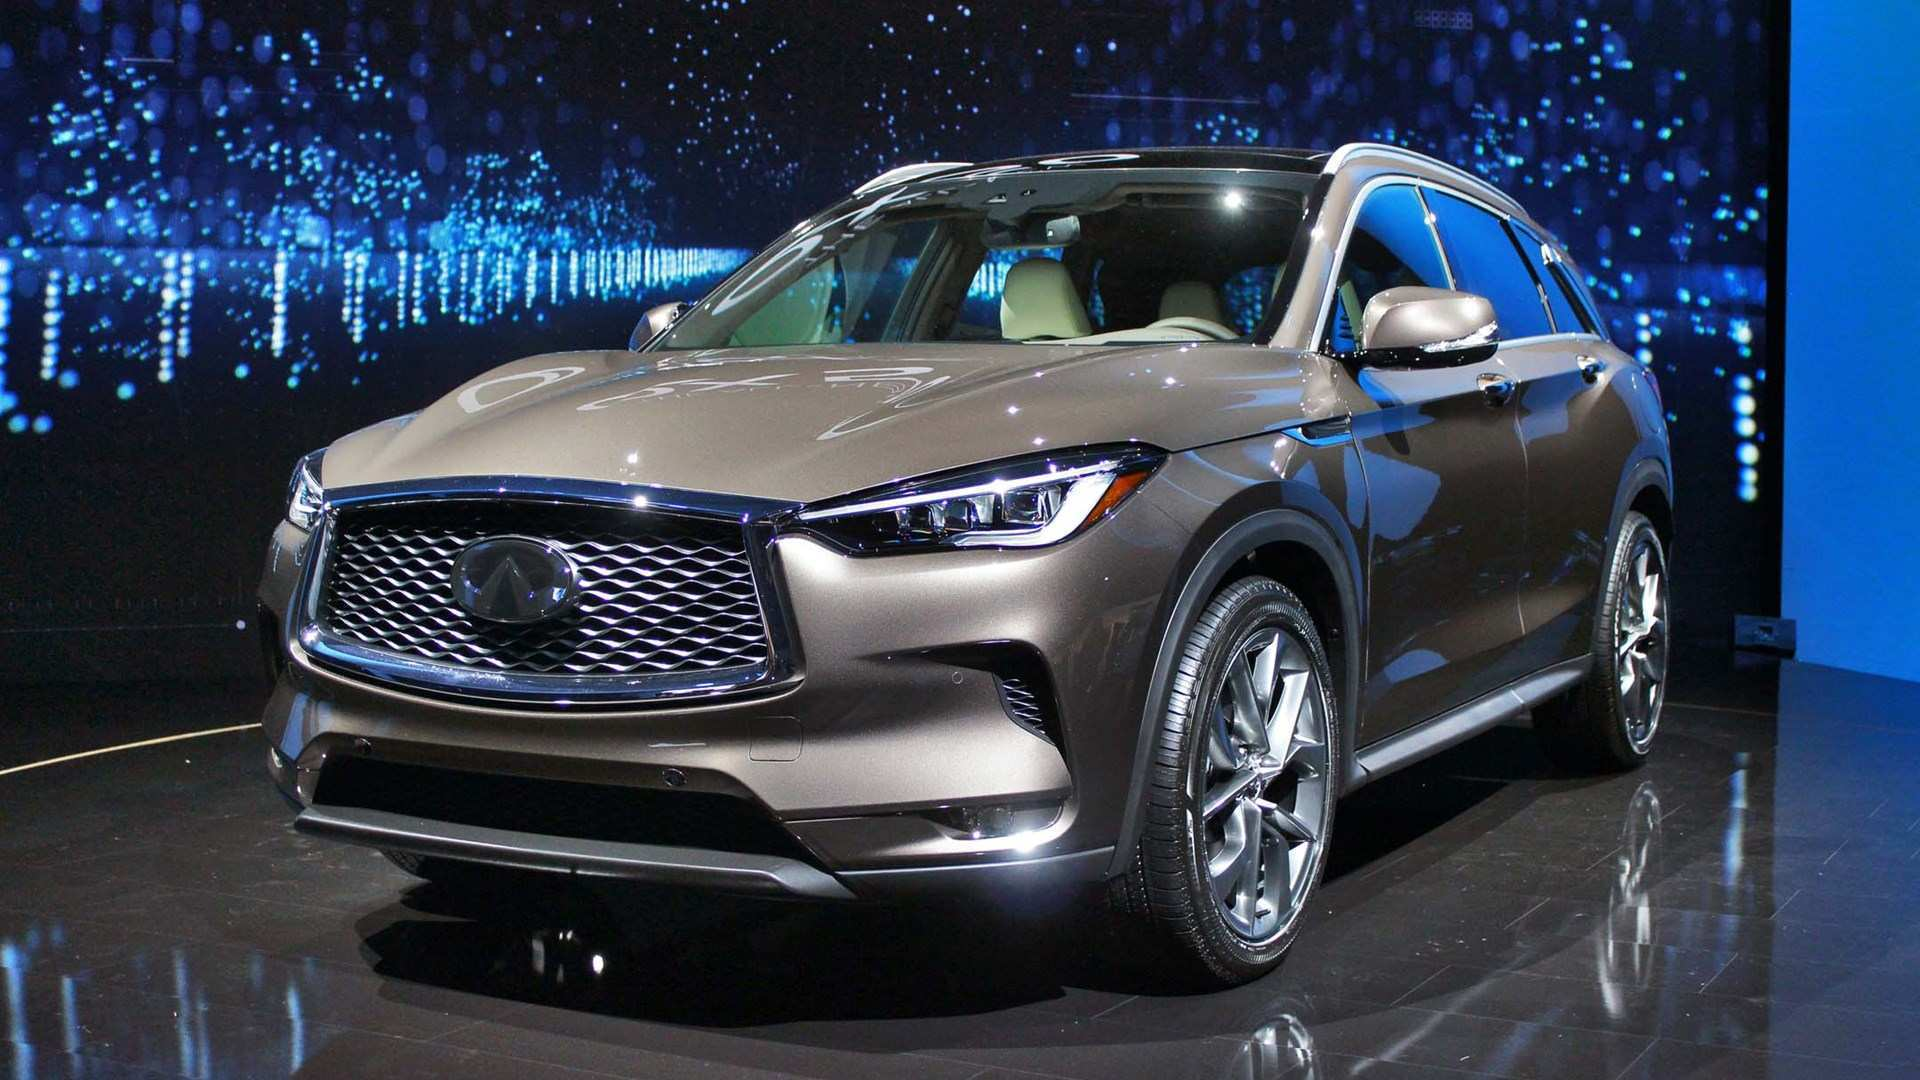 83 The 2020 Infiniti Qx50 Luxe New Concept Specs and Review by 2020 Infiniti Qx50 Luxe New Concept